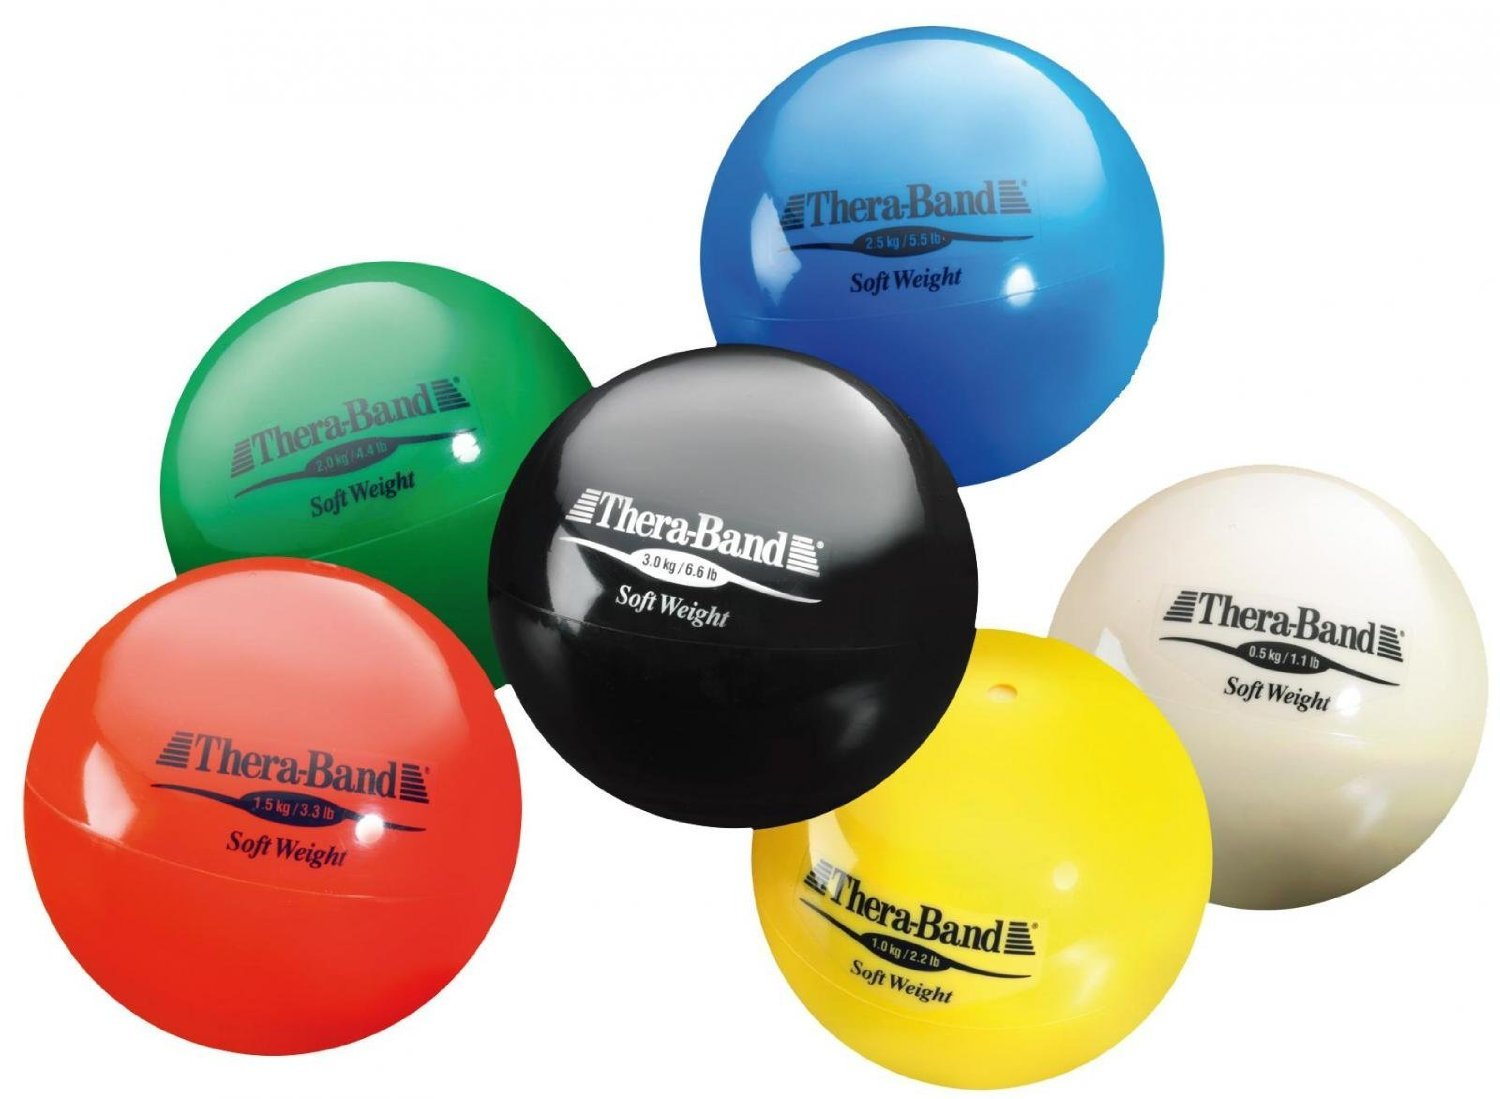 Hygienic/Theraband 25801 Soft Weight Ball, Assorted (Pack of 6)